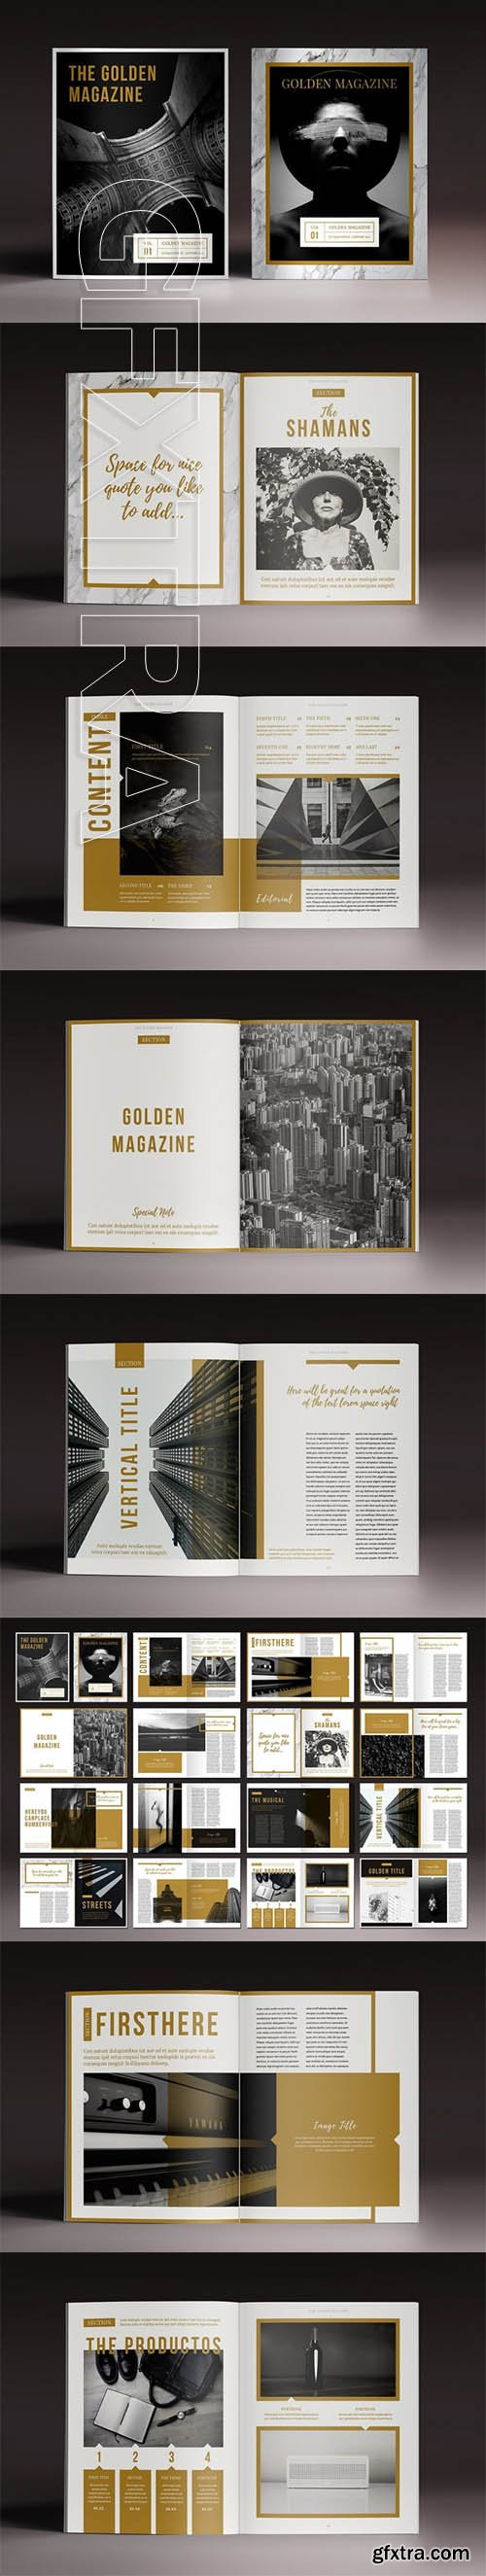 The Golden Magazine Indesign Template